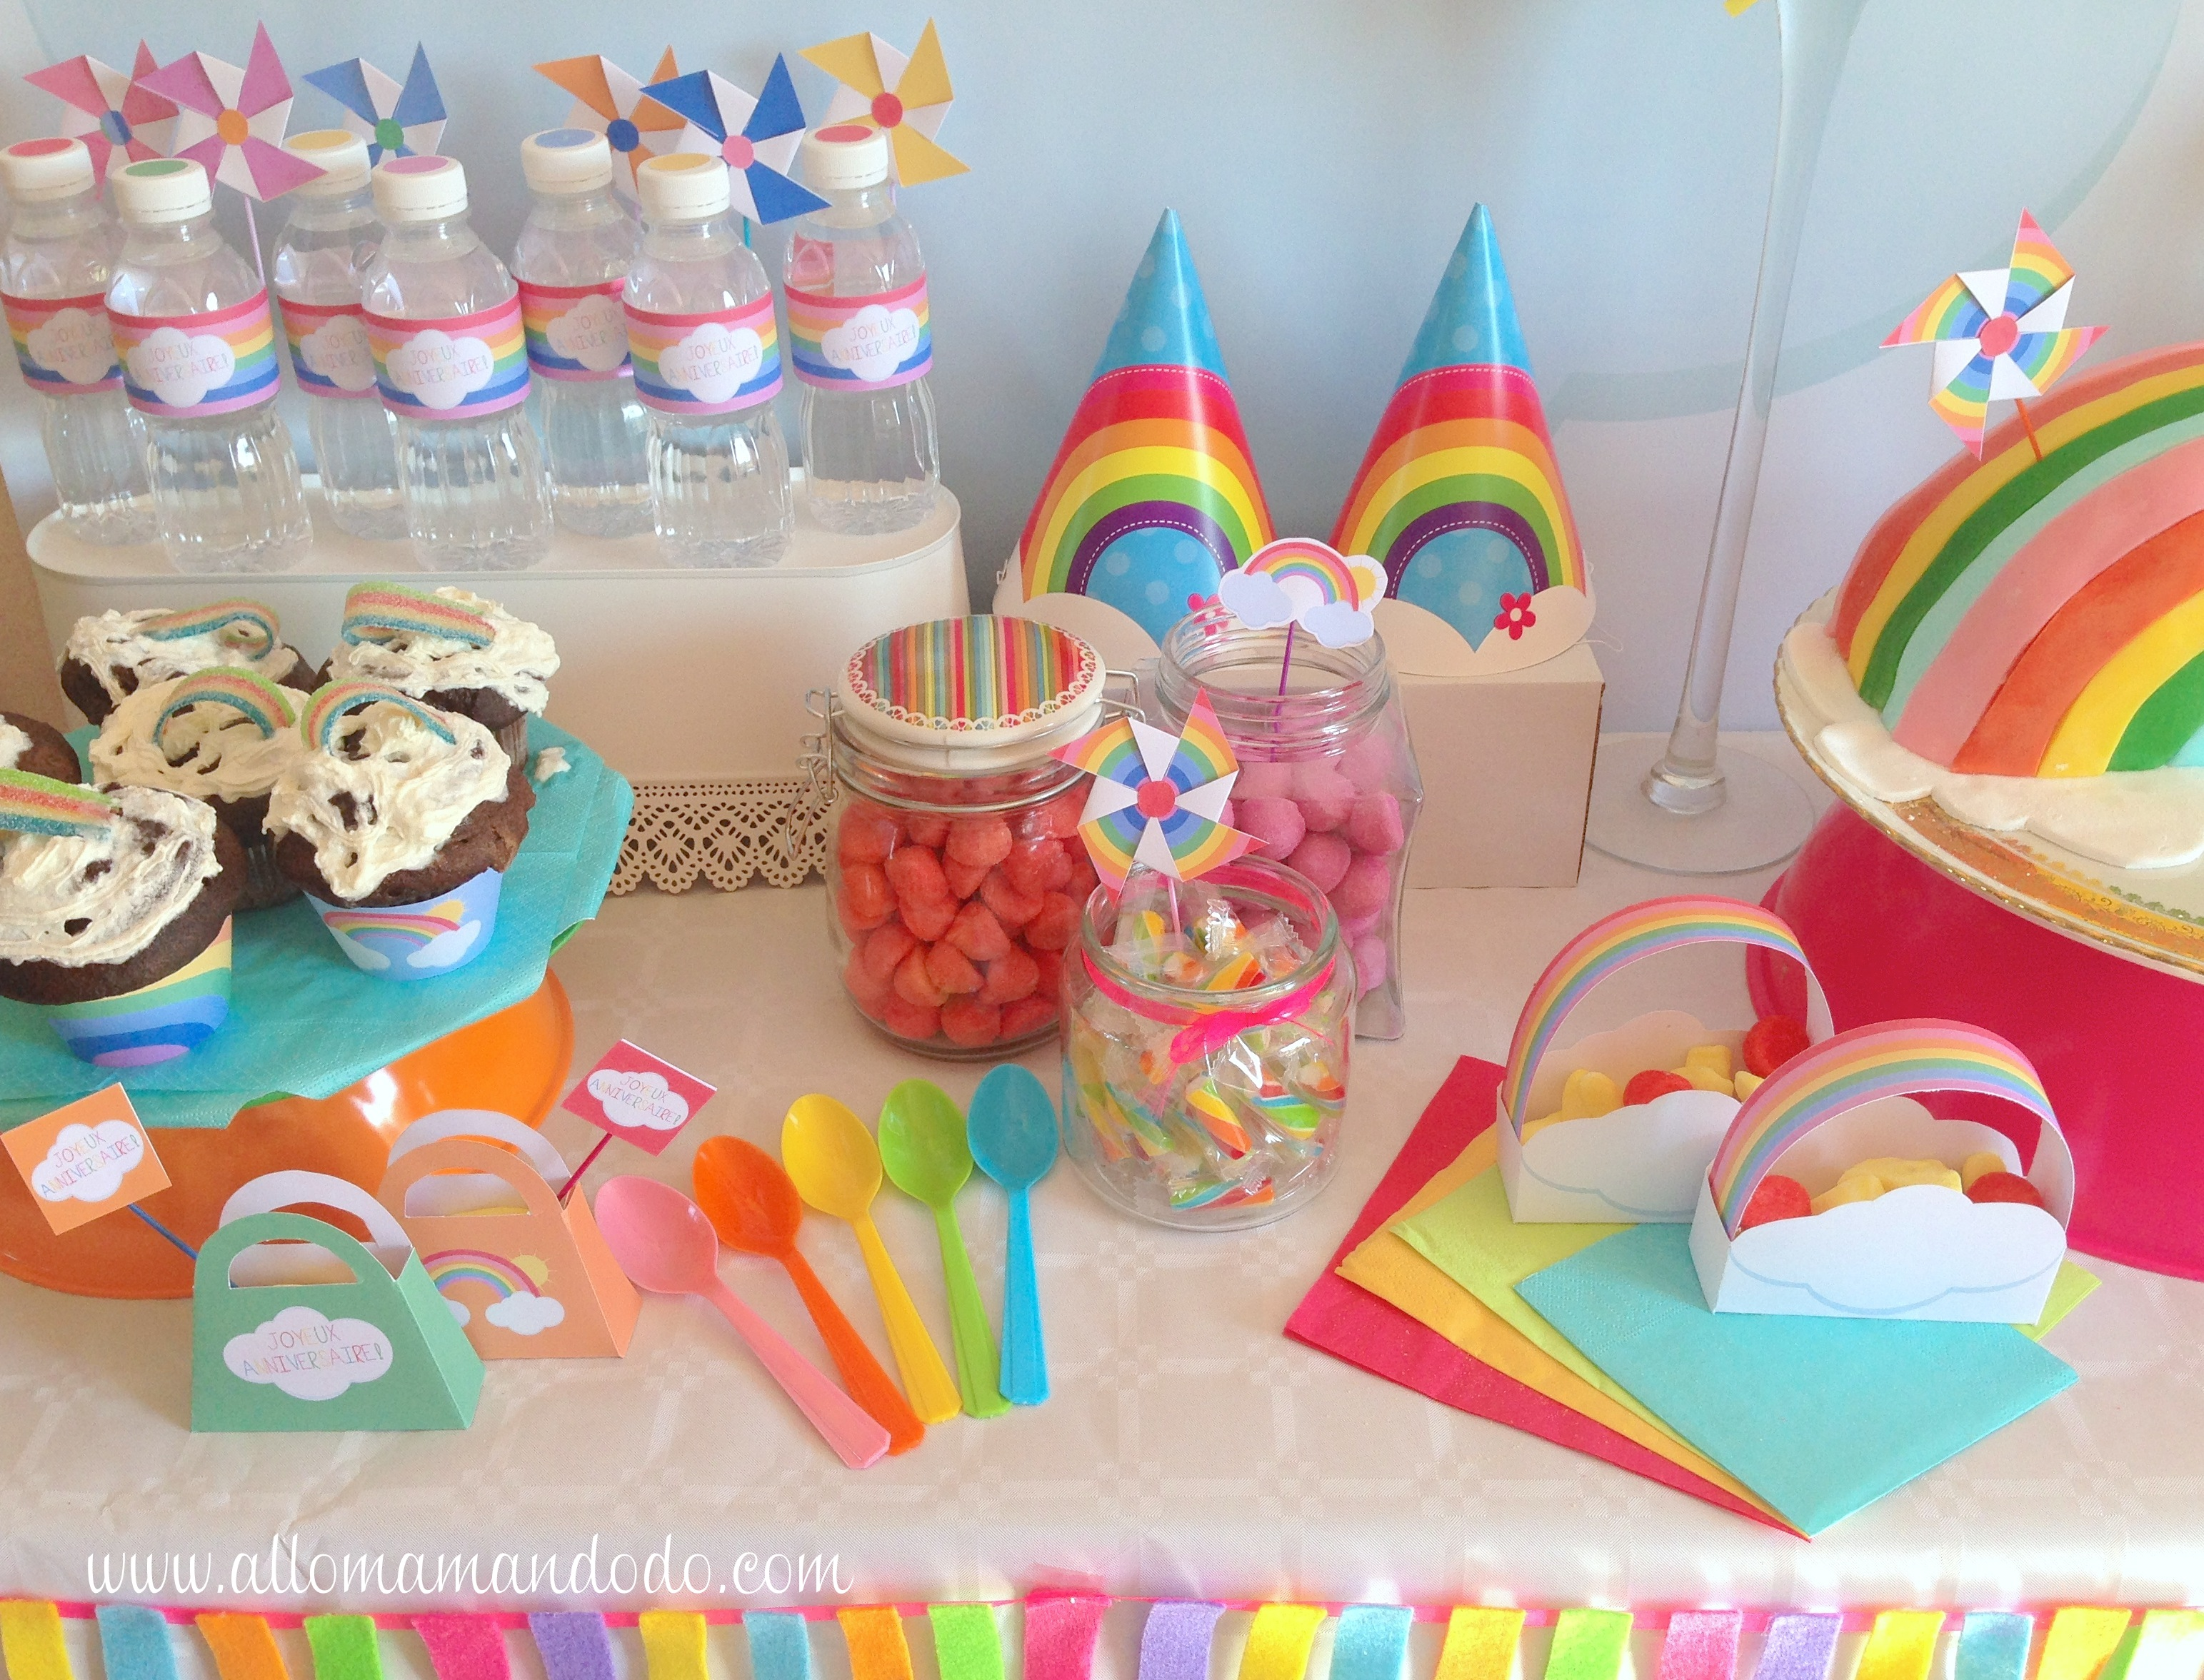 La sweet table d co d 39 anniversaire arc en ciel les for Maison deco 5 ans apres